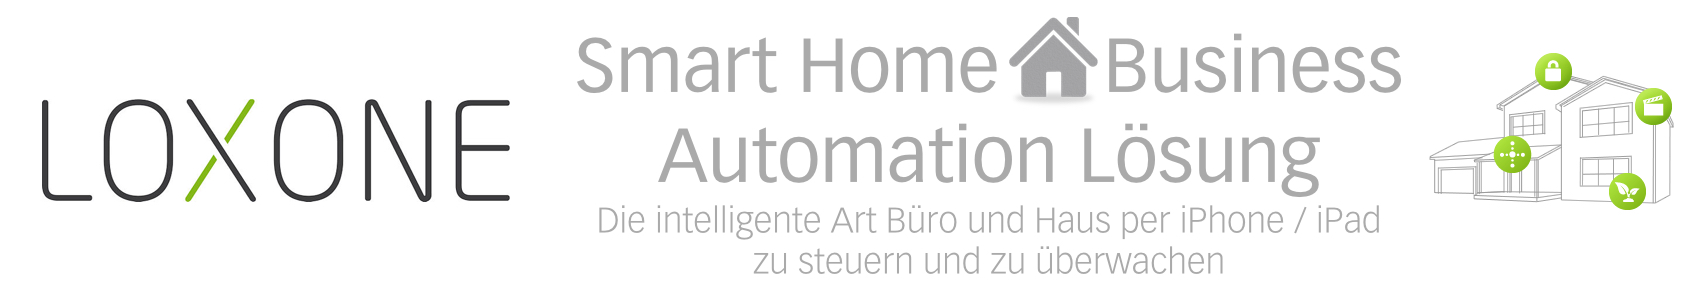 loxone hausautomatisierung smart home business automation l sung. Black Bedroom Furniture Sets. Home Design Ideas